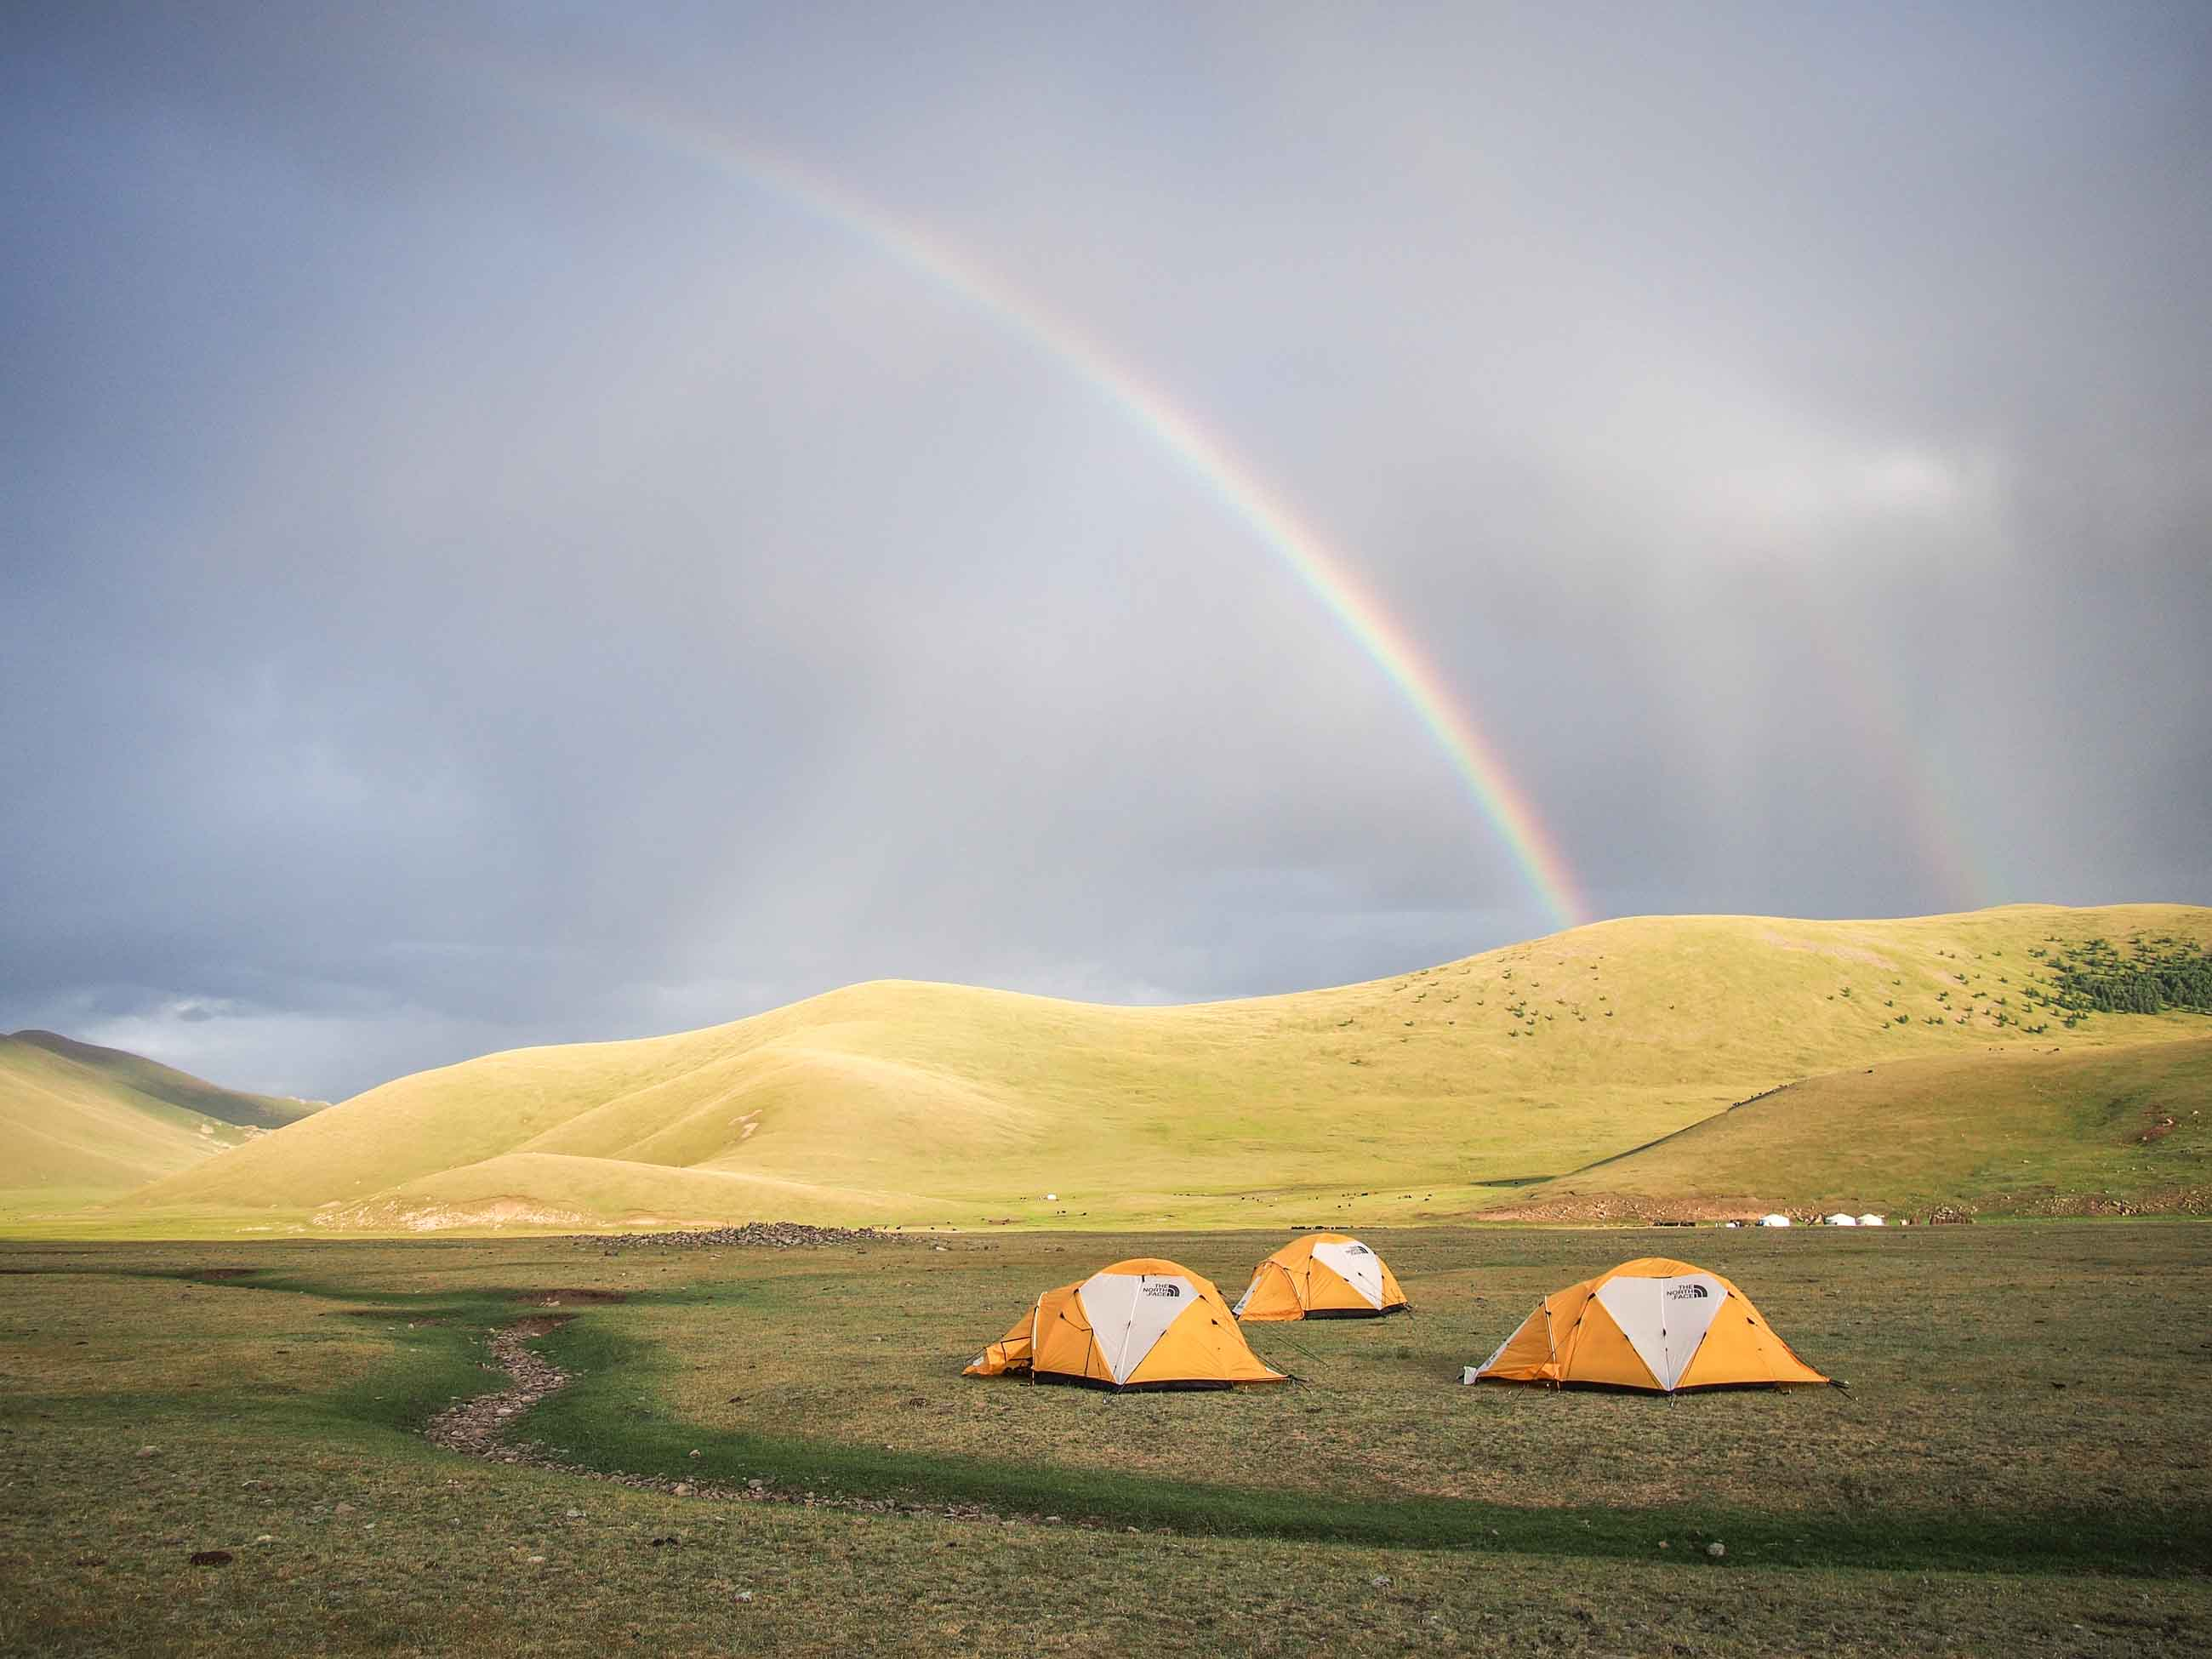 campsite for cyclists in Mongolia